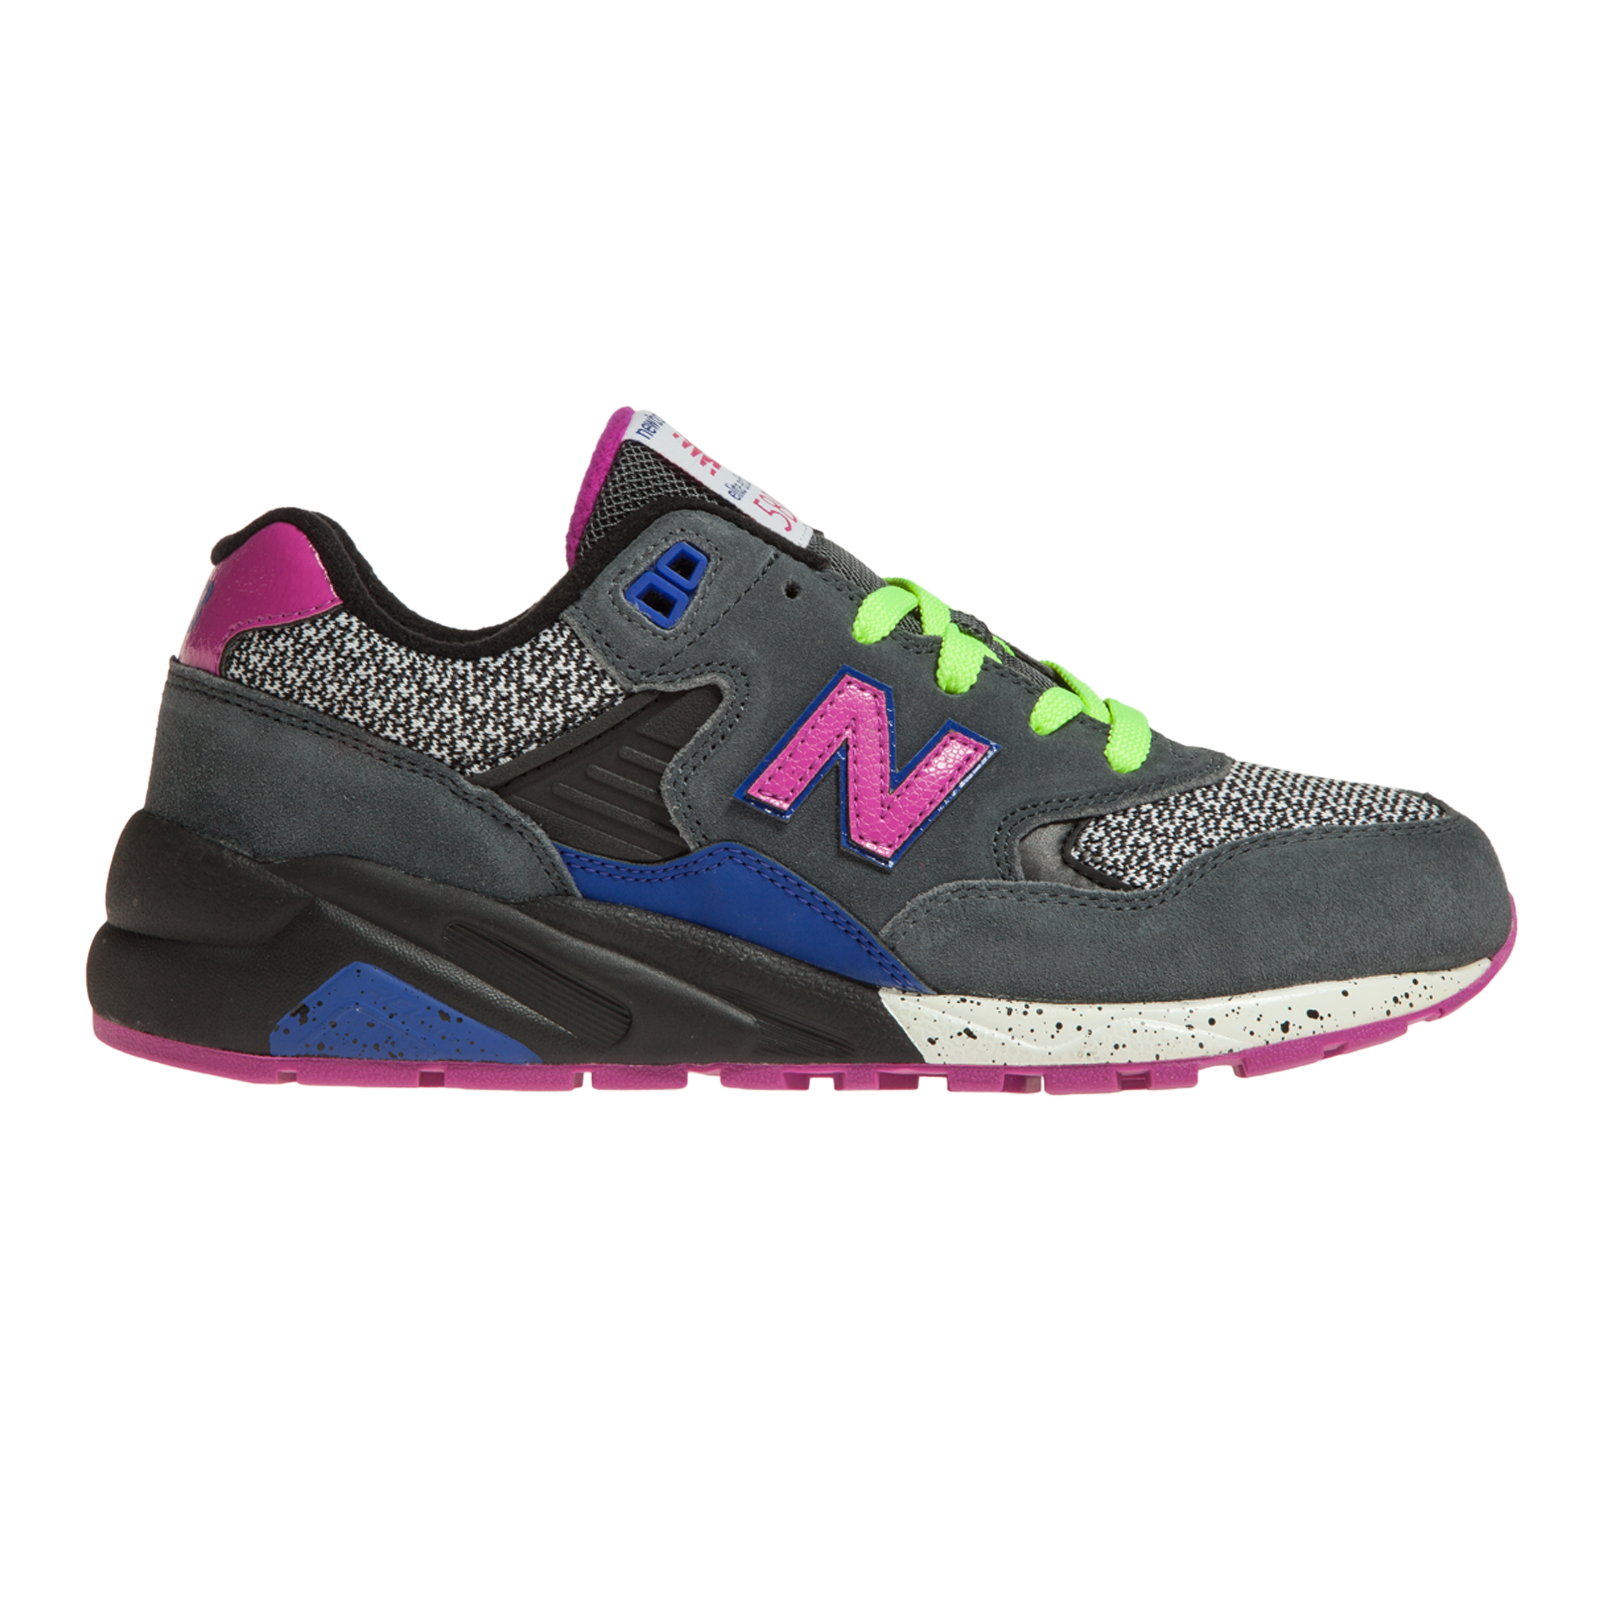 nb now hooked on